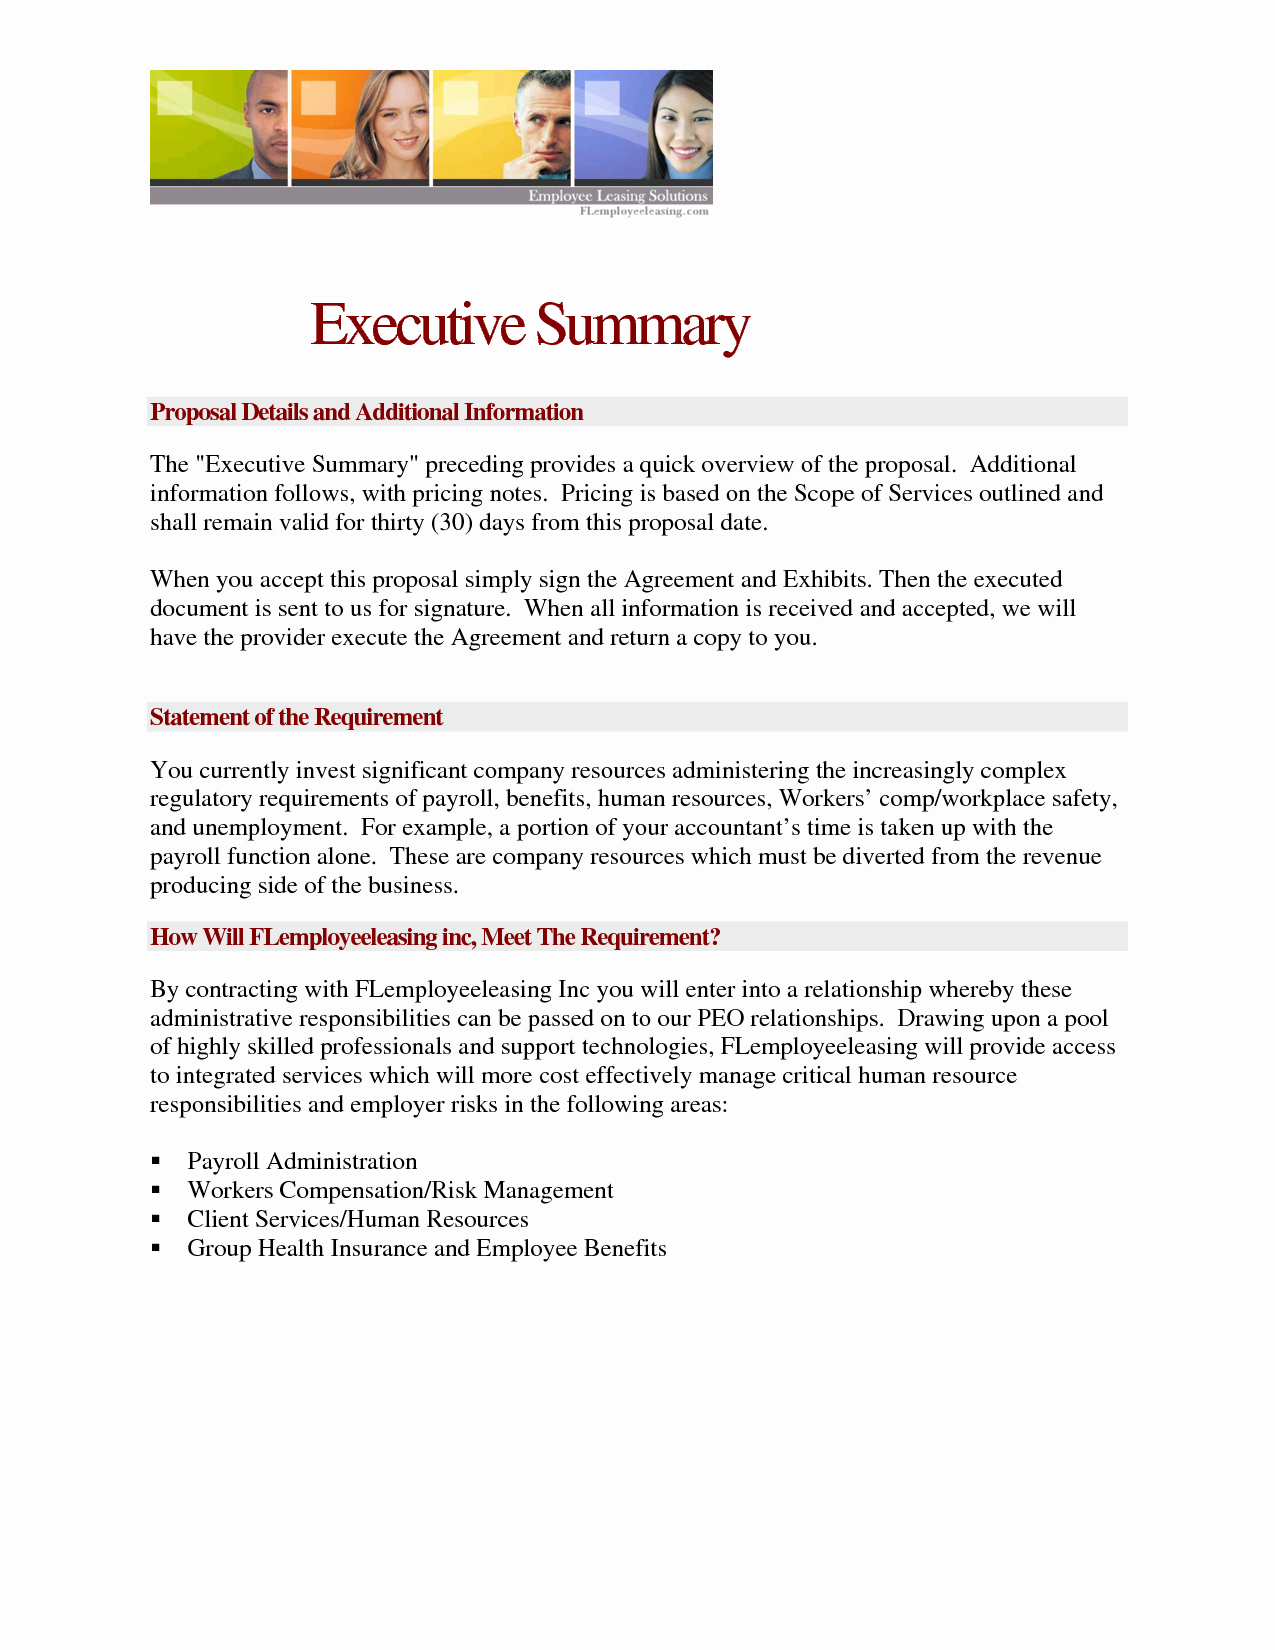 Executive Summary Sample for Proposal Lovely Proposal Template Category Page 3 Efoza